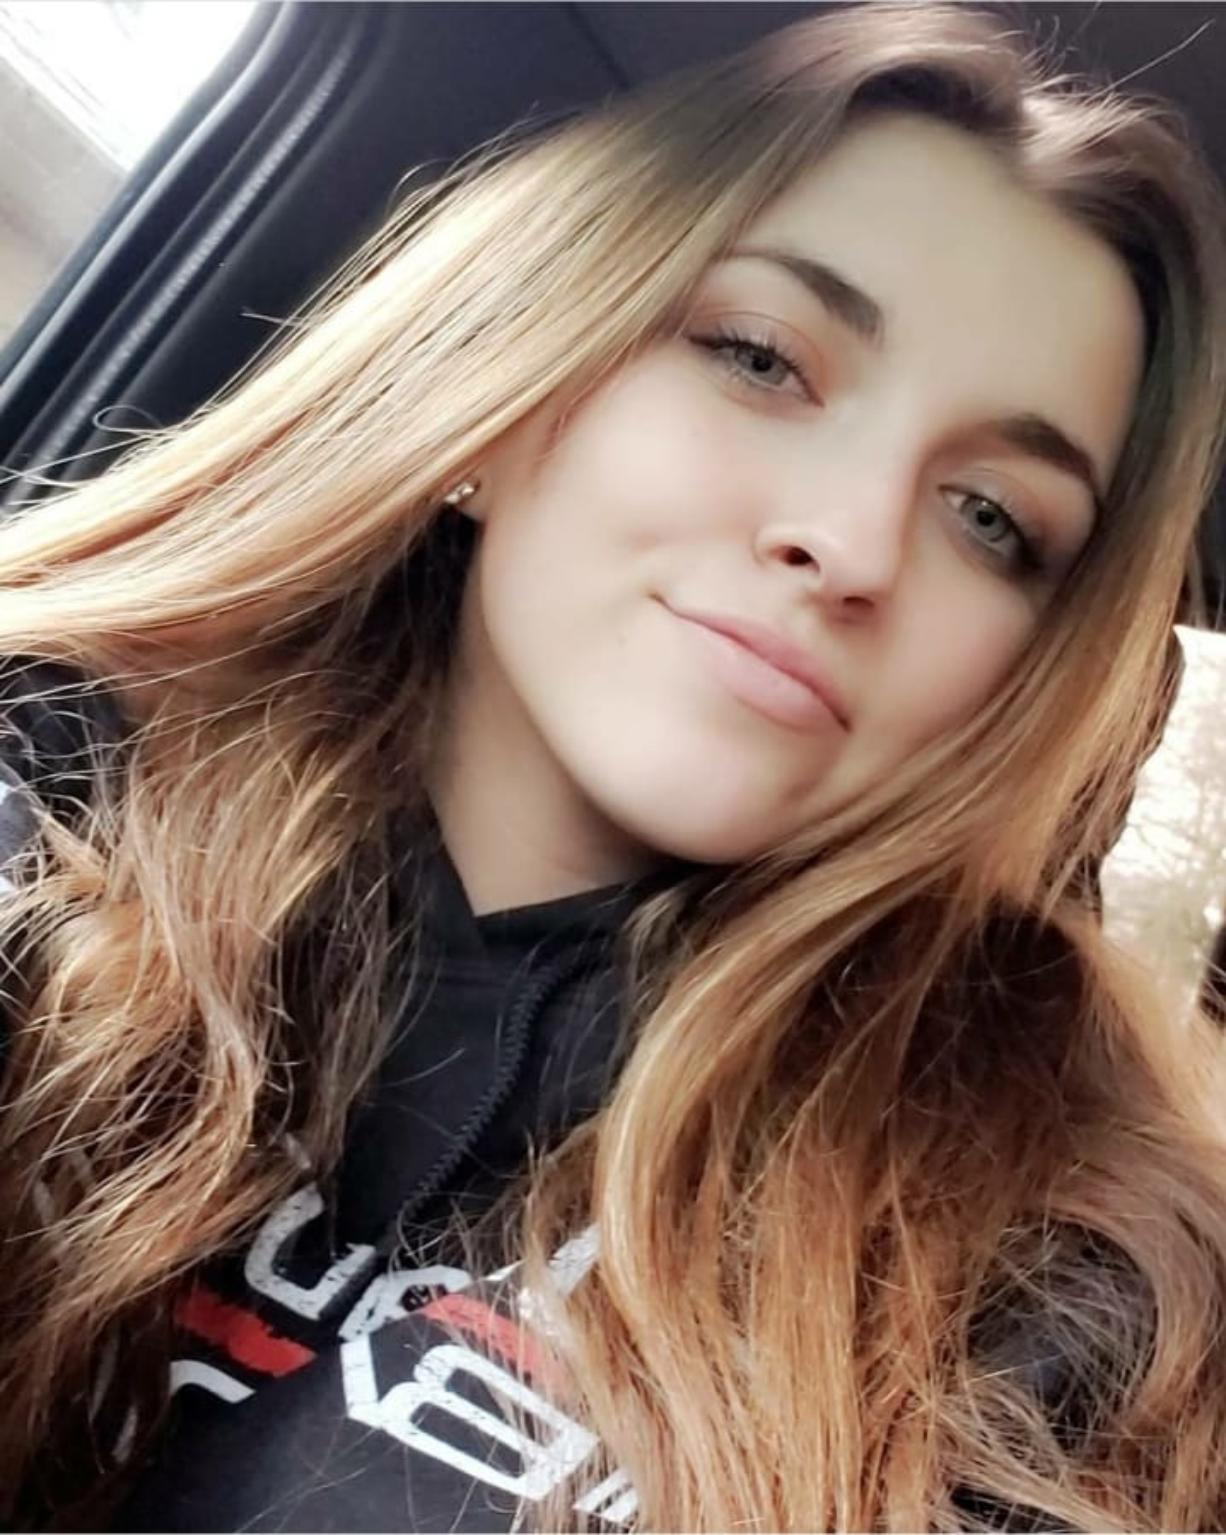 Lacey Carol-Lynn Hall, 15, died in the crash near the 700 block of Davis Peak Road, about six miles east of Woodland, the sheriffis office reported in a press release Wednesday.